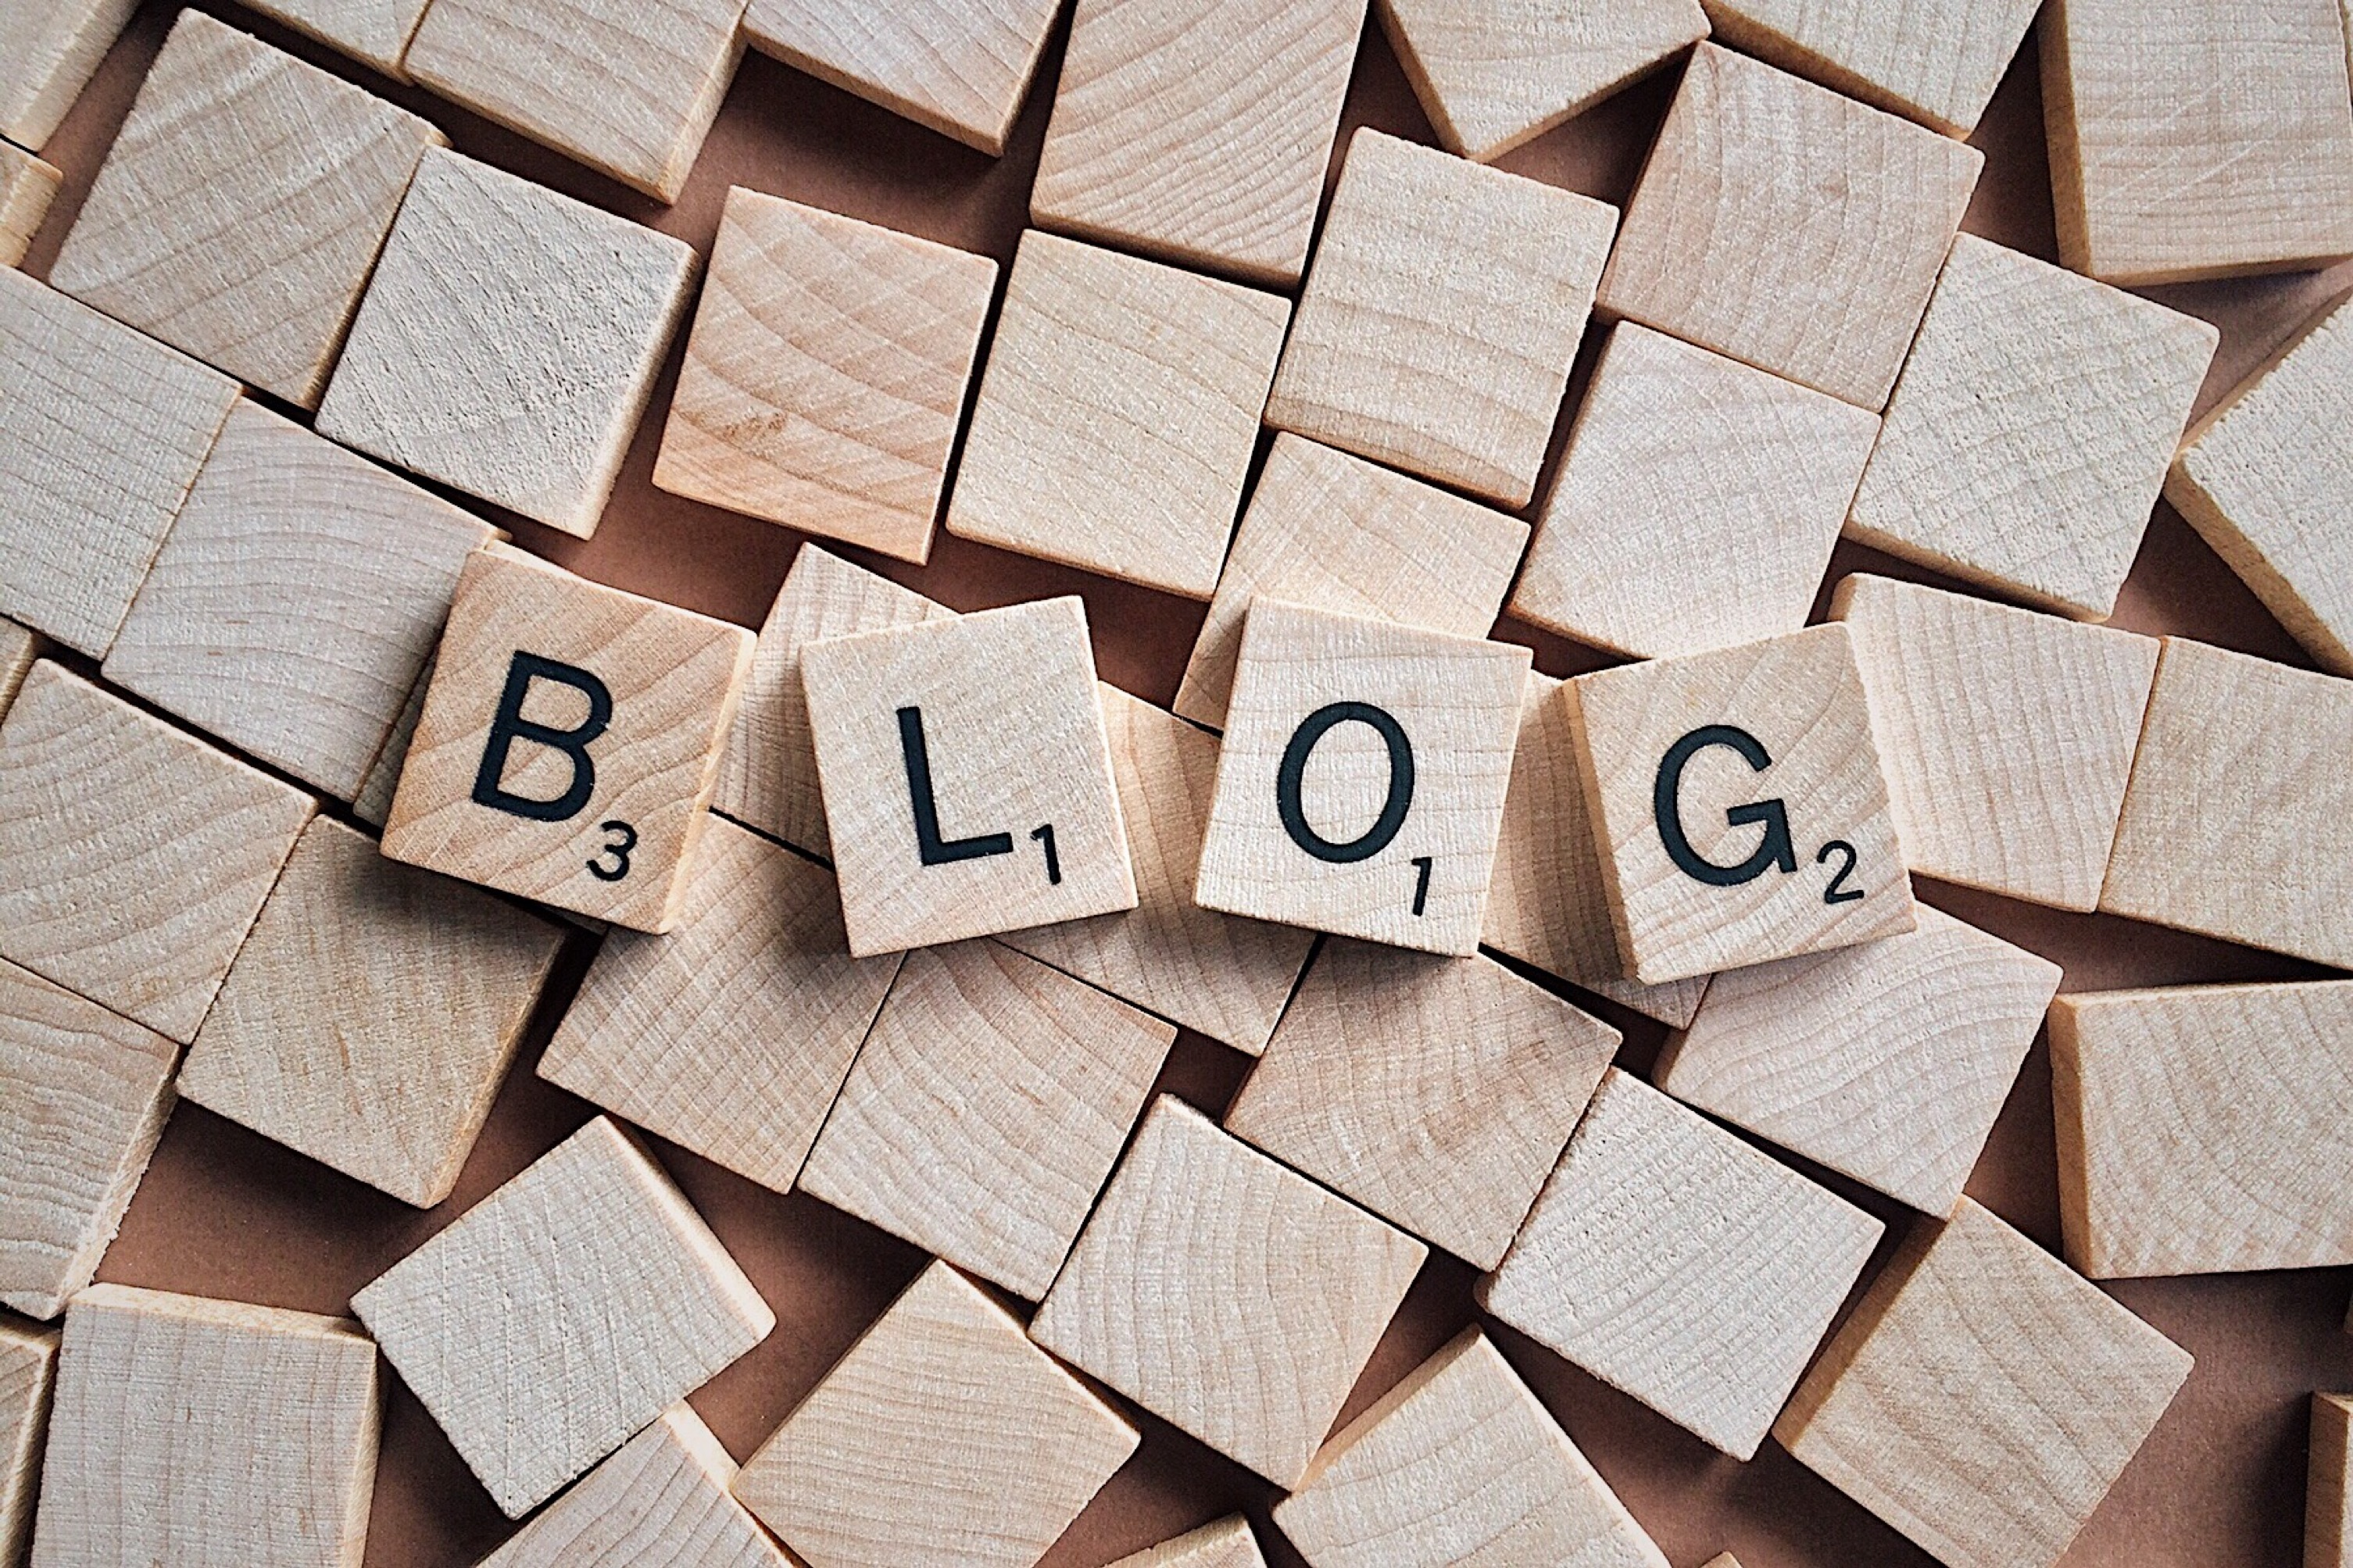 Content Innovation: How Blogging Can Drive More Traffic to Your Business Site